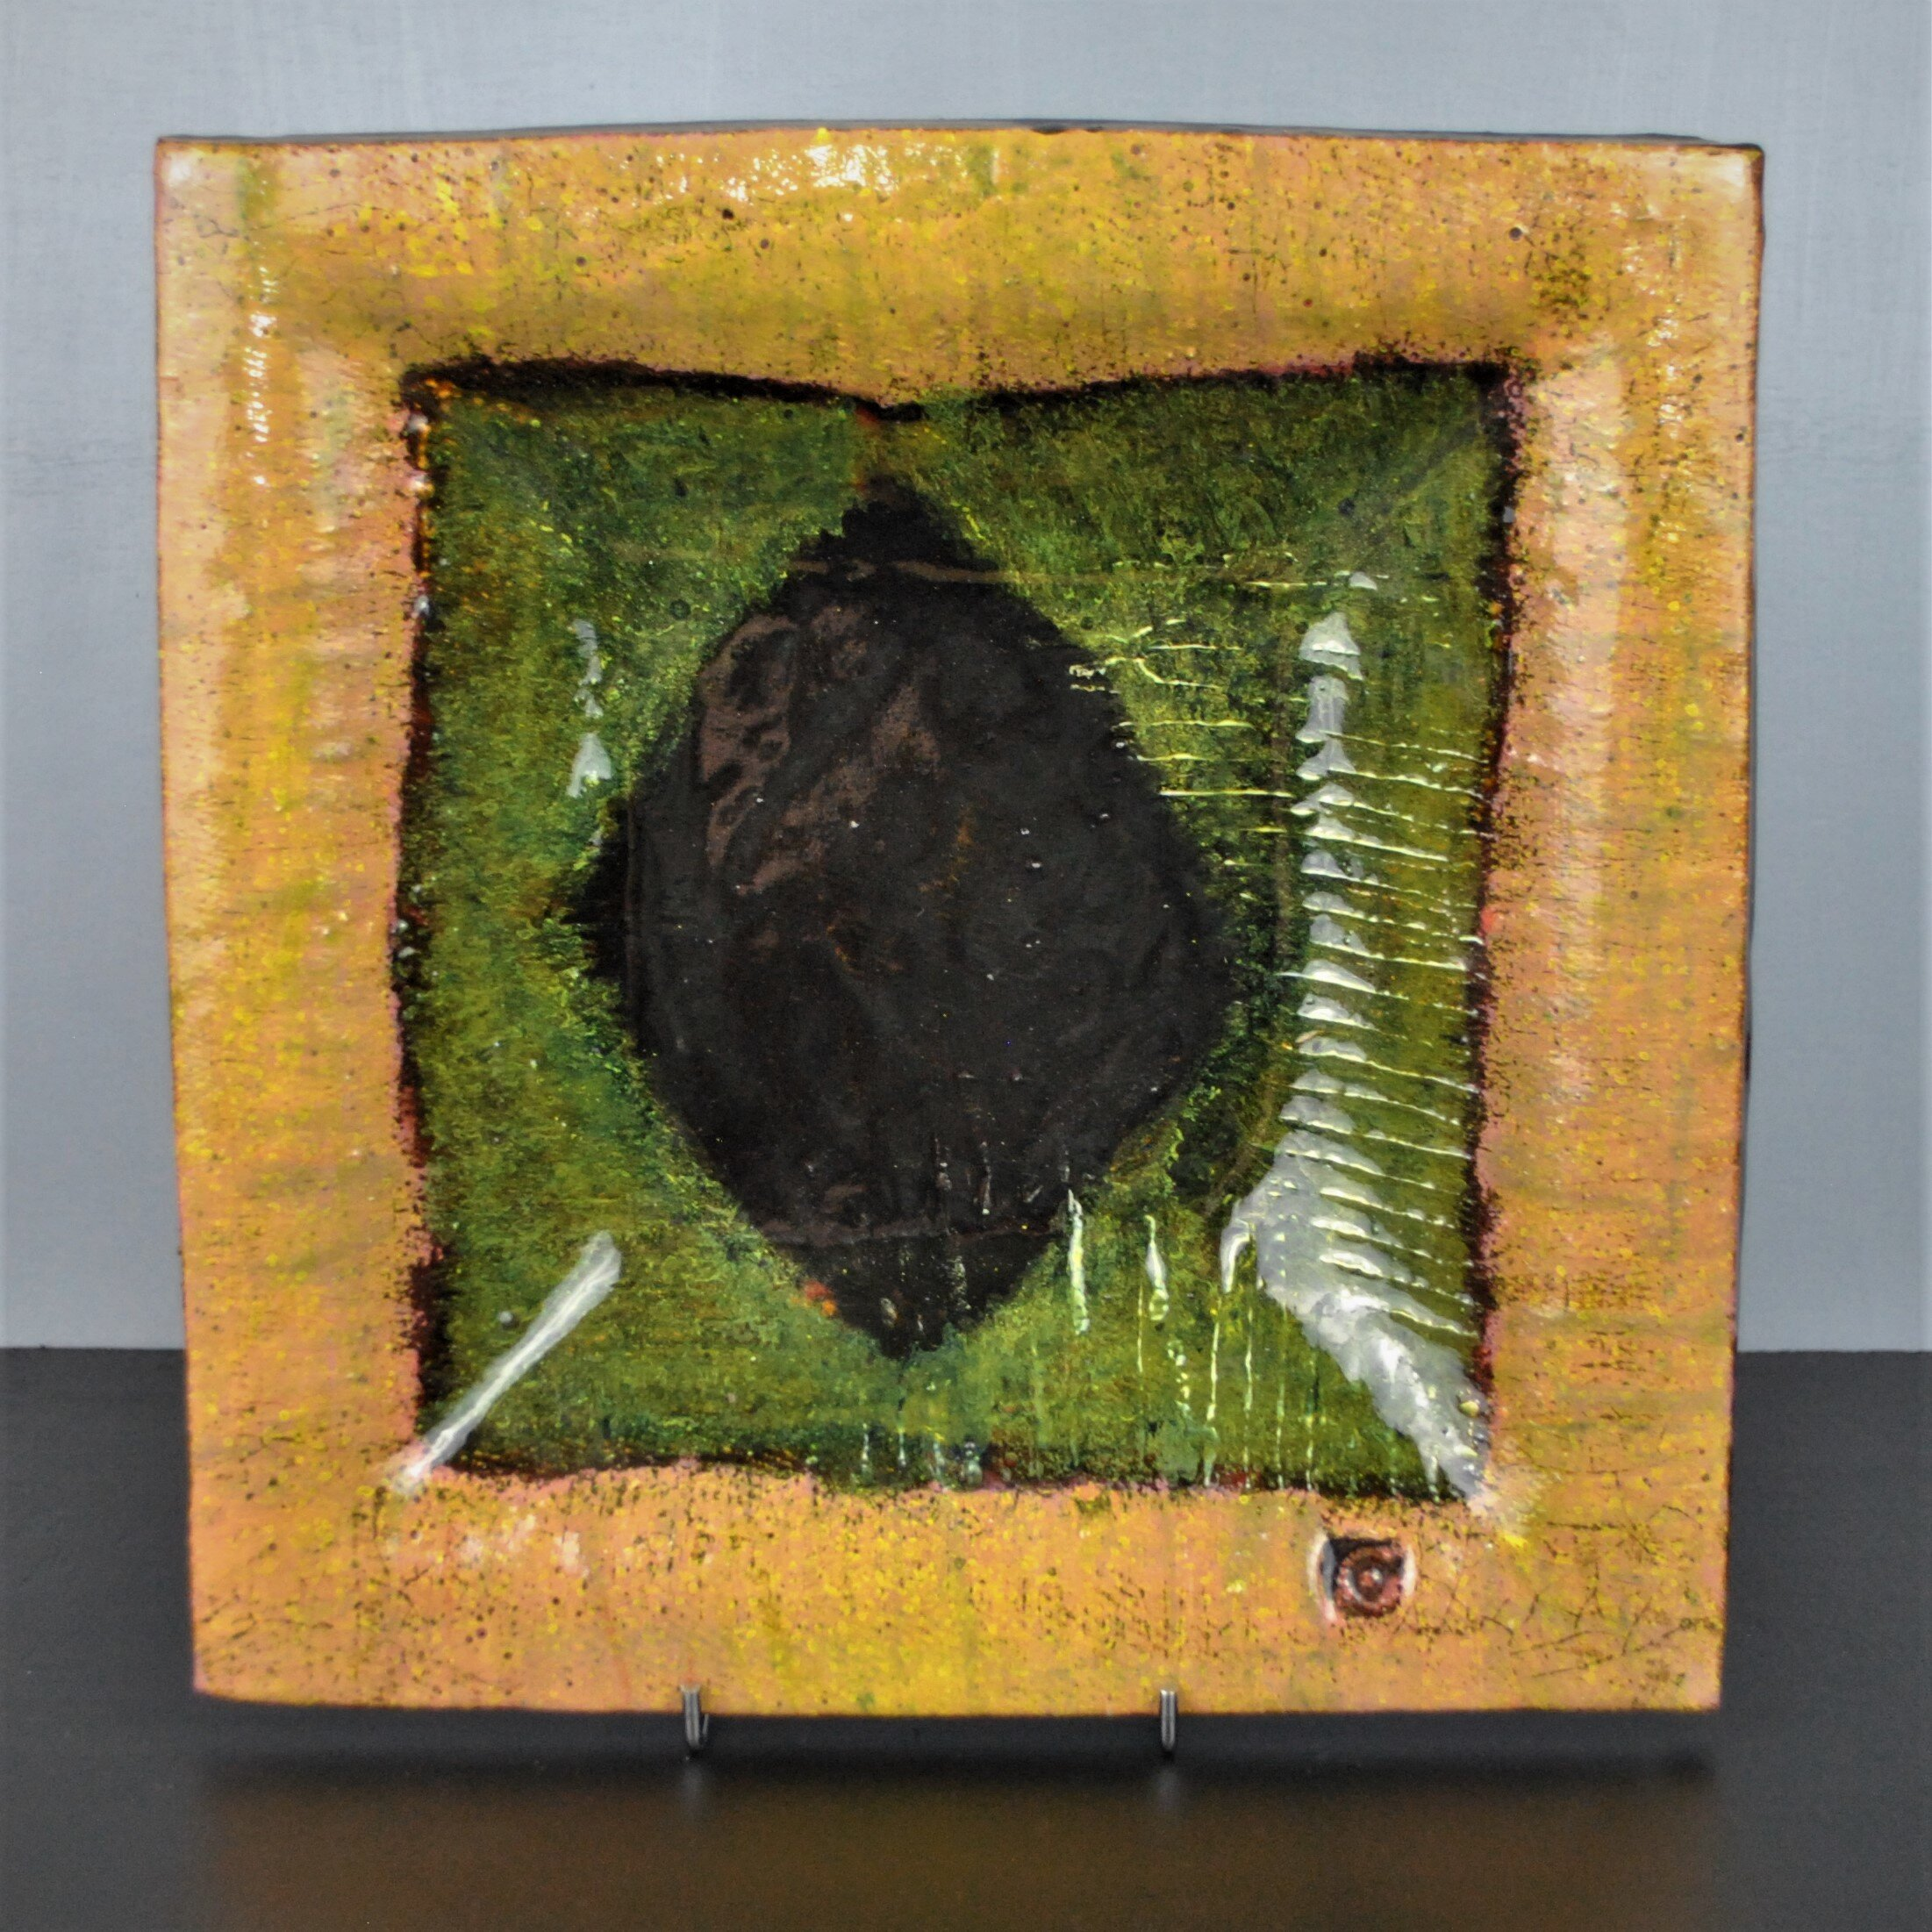 Mike Cain 2018. Square slipware dish with a black diamond on green. On stand. (Square edit) DSC_6265 (2).JPG